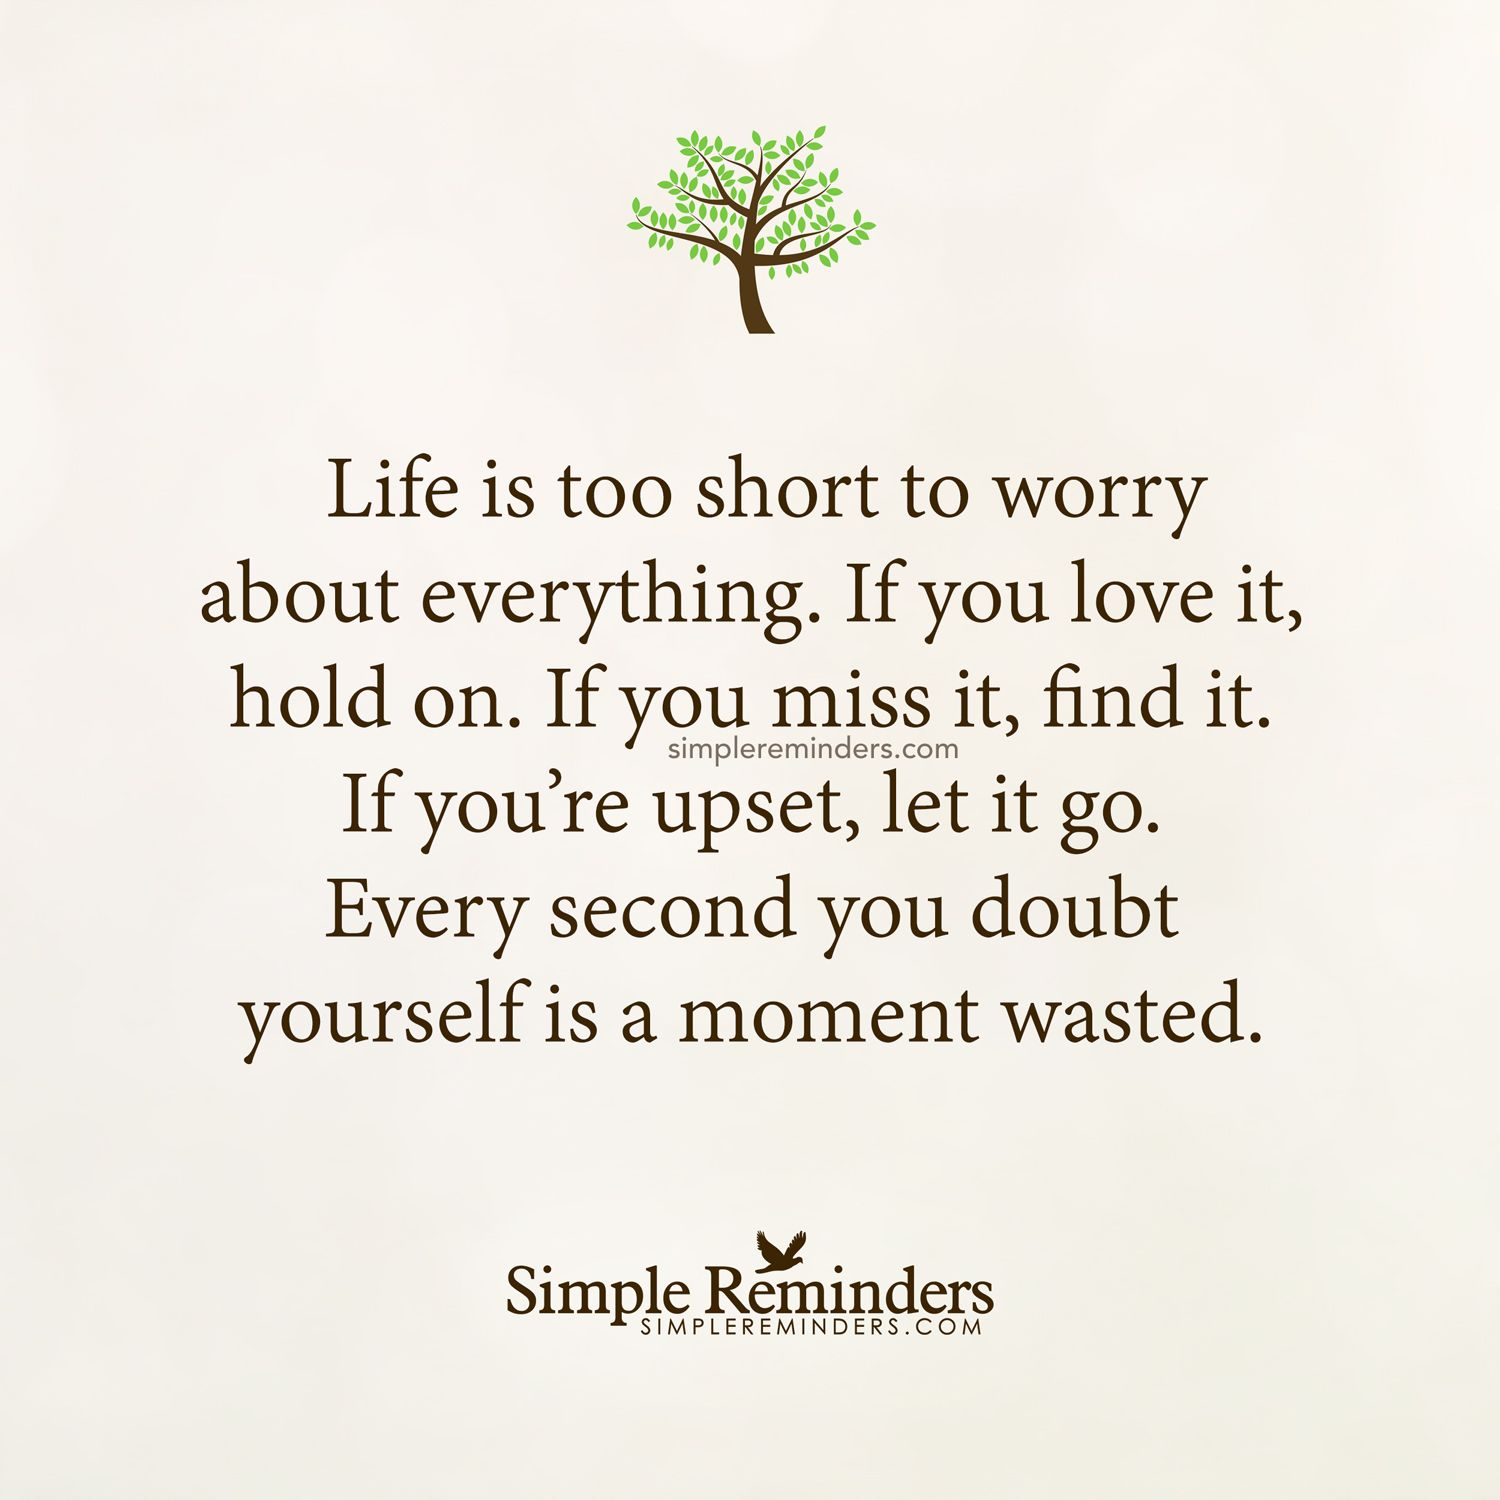 Life Is Too Short Quotes And Sayings: Life Is Too Short To Worry By Unknown Author